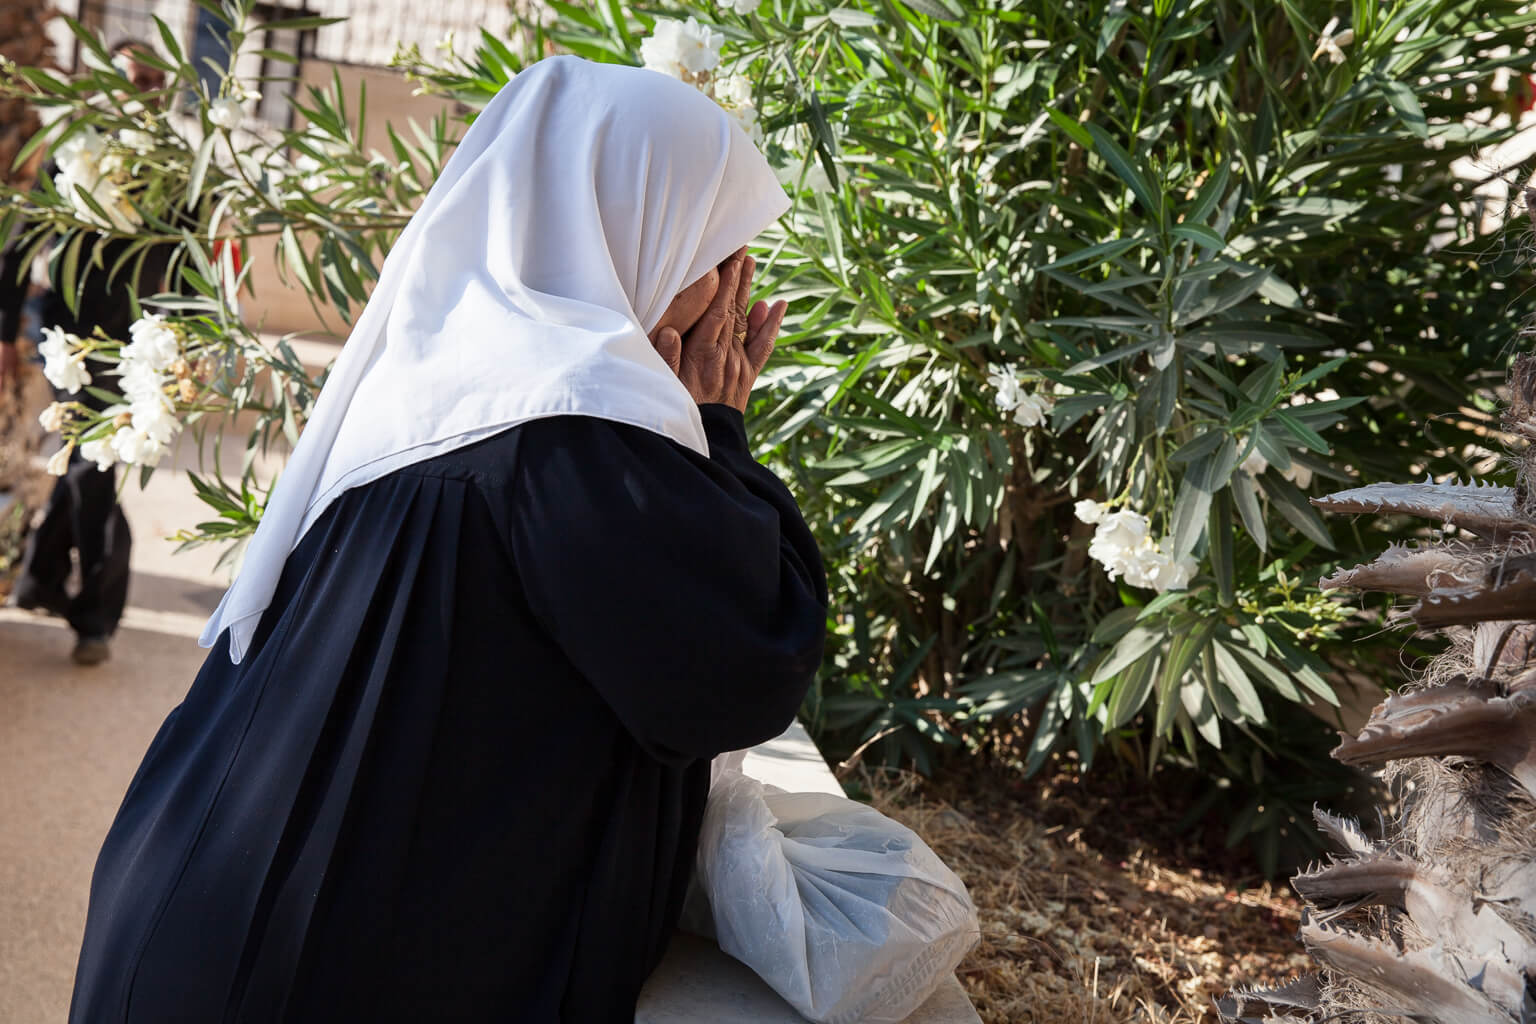 The mother of Abed Al Qader Abu Laban, visits her son who was killed by the during the Second Intifada at the age of 24. He was shot by the Israeli army while throwing stones in Al Khader village. (Photo: Rebecca George)